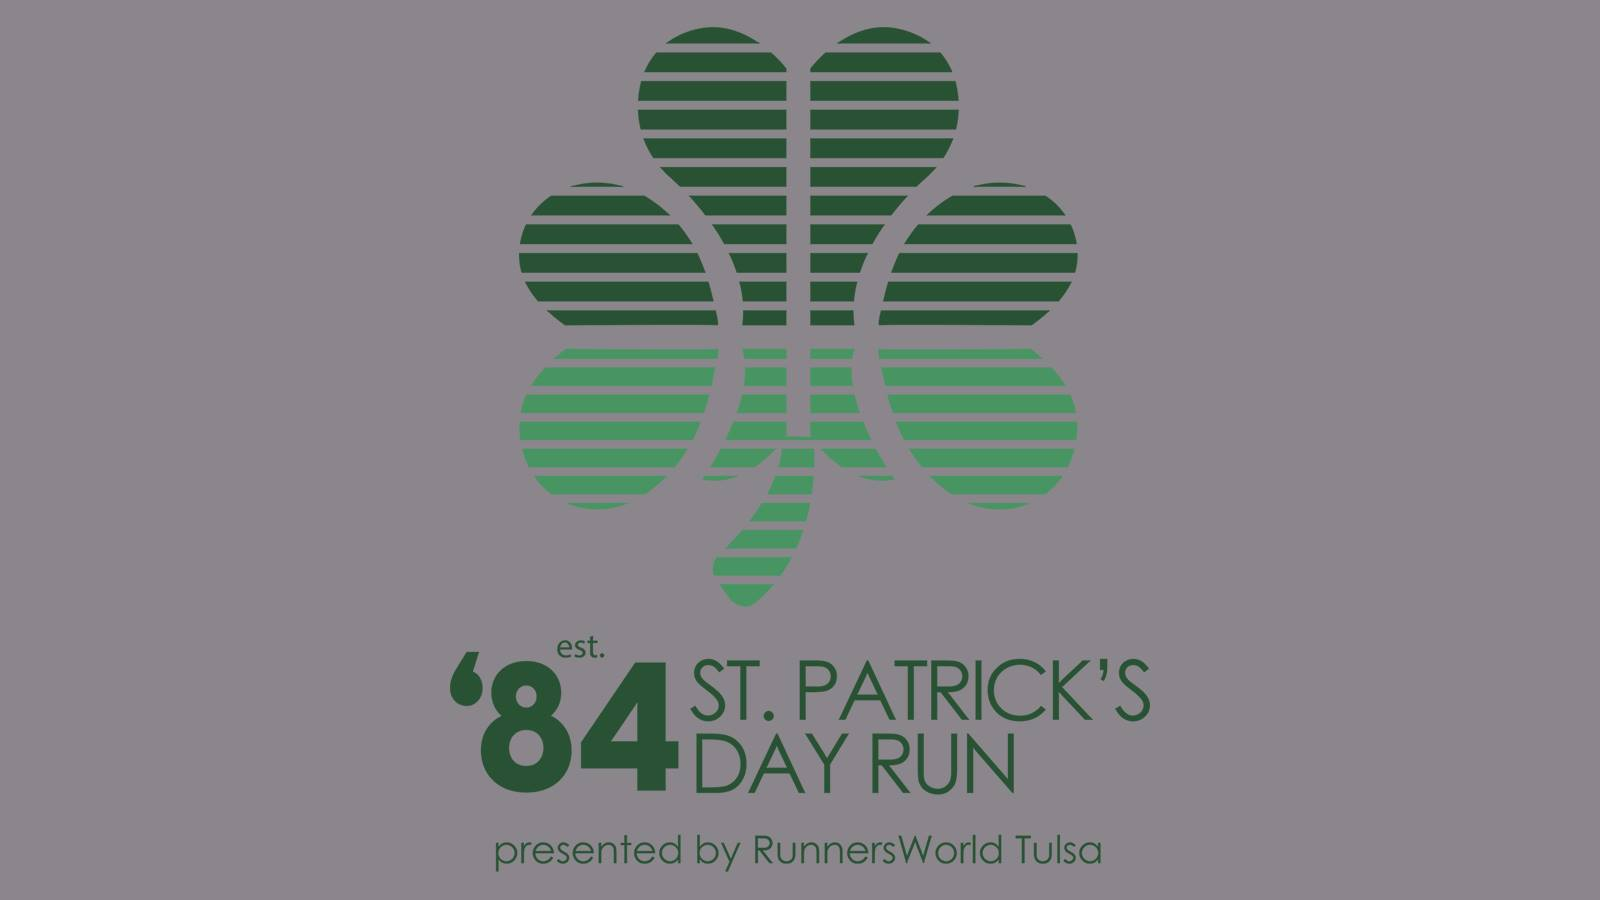 St. Patrick's Day Run logo